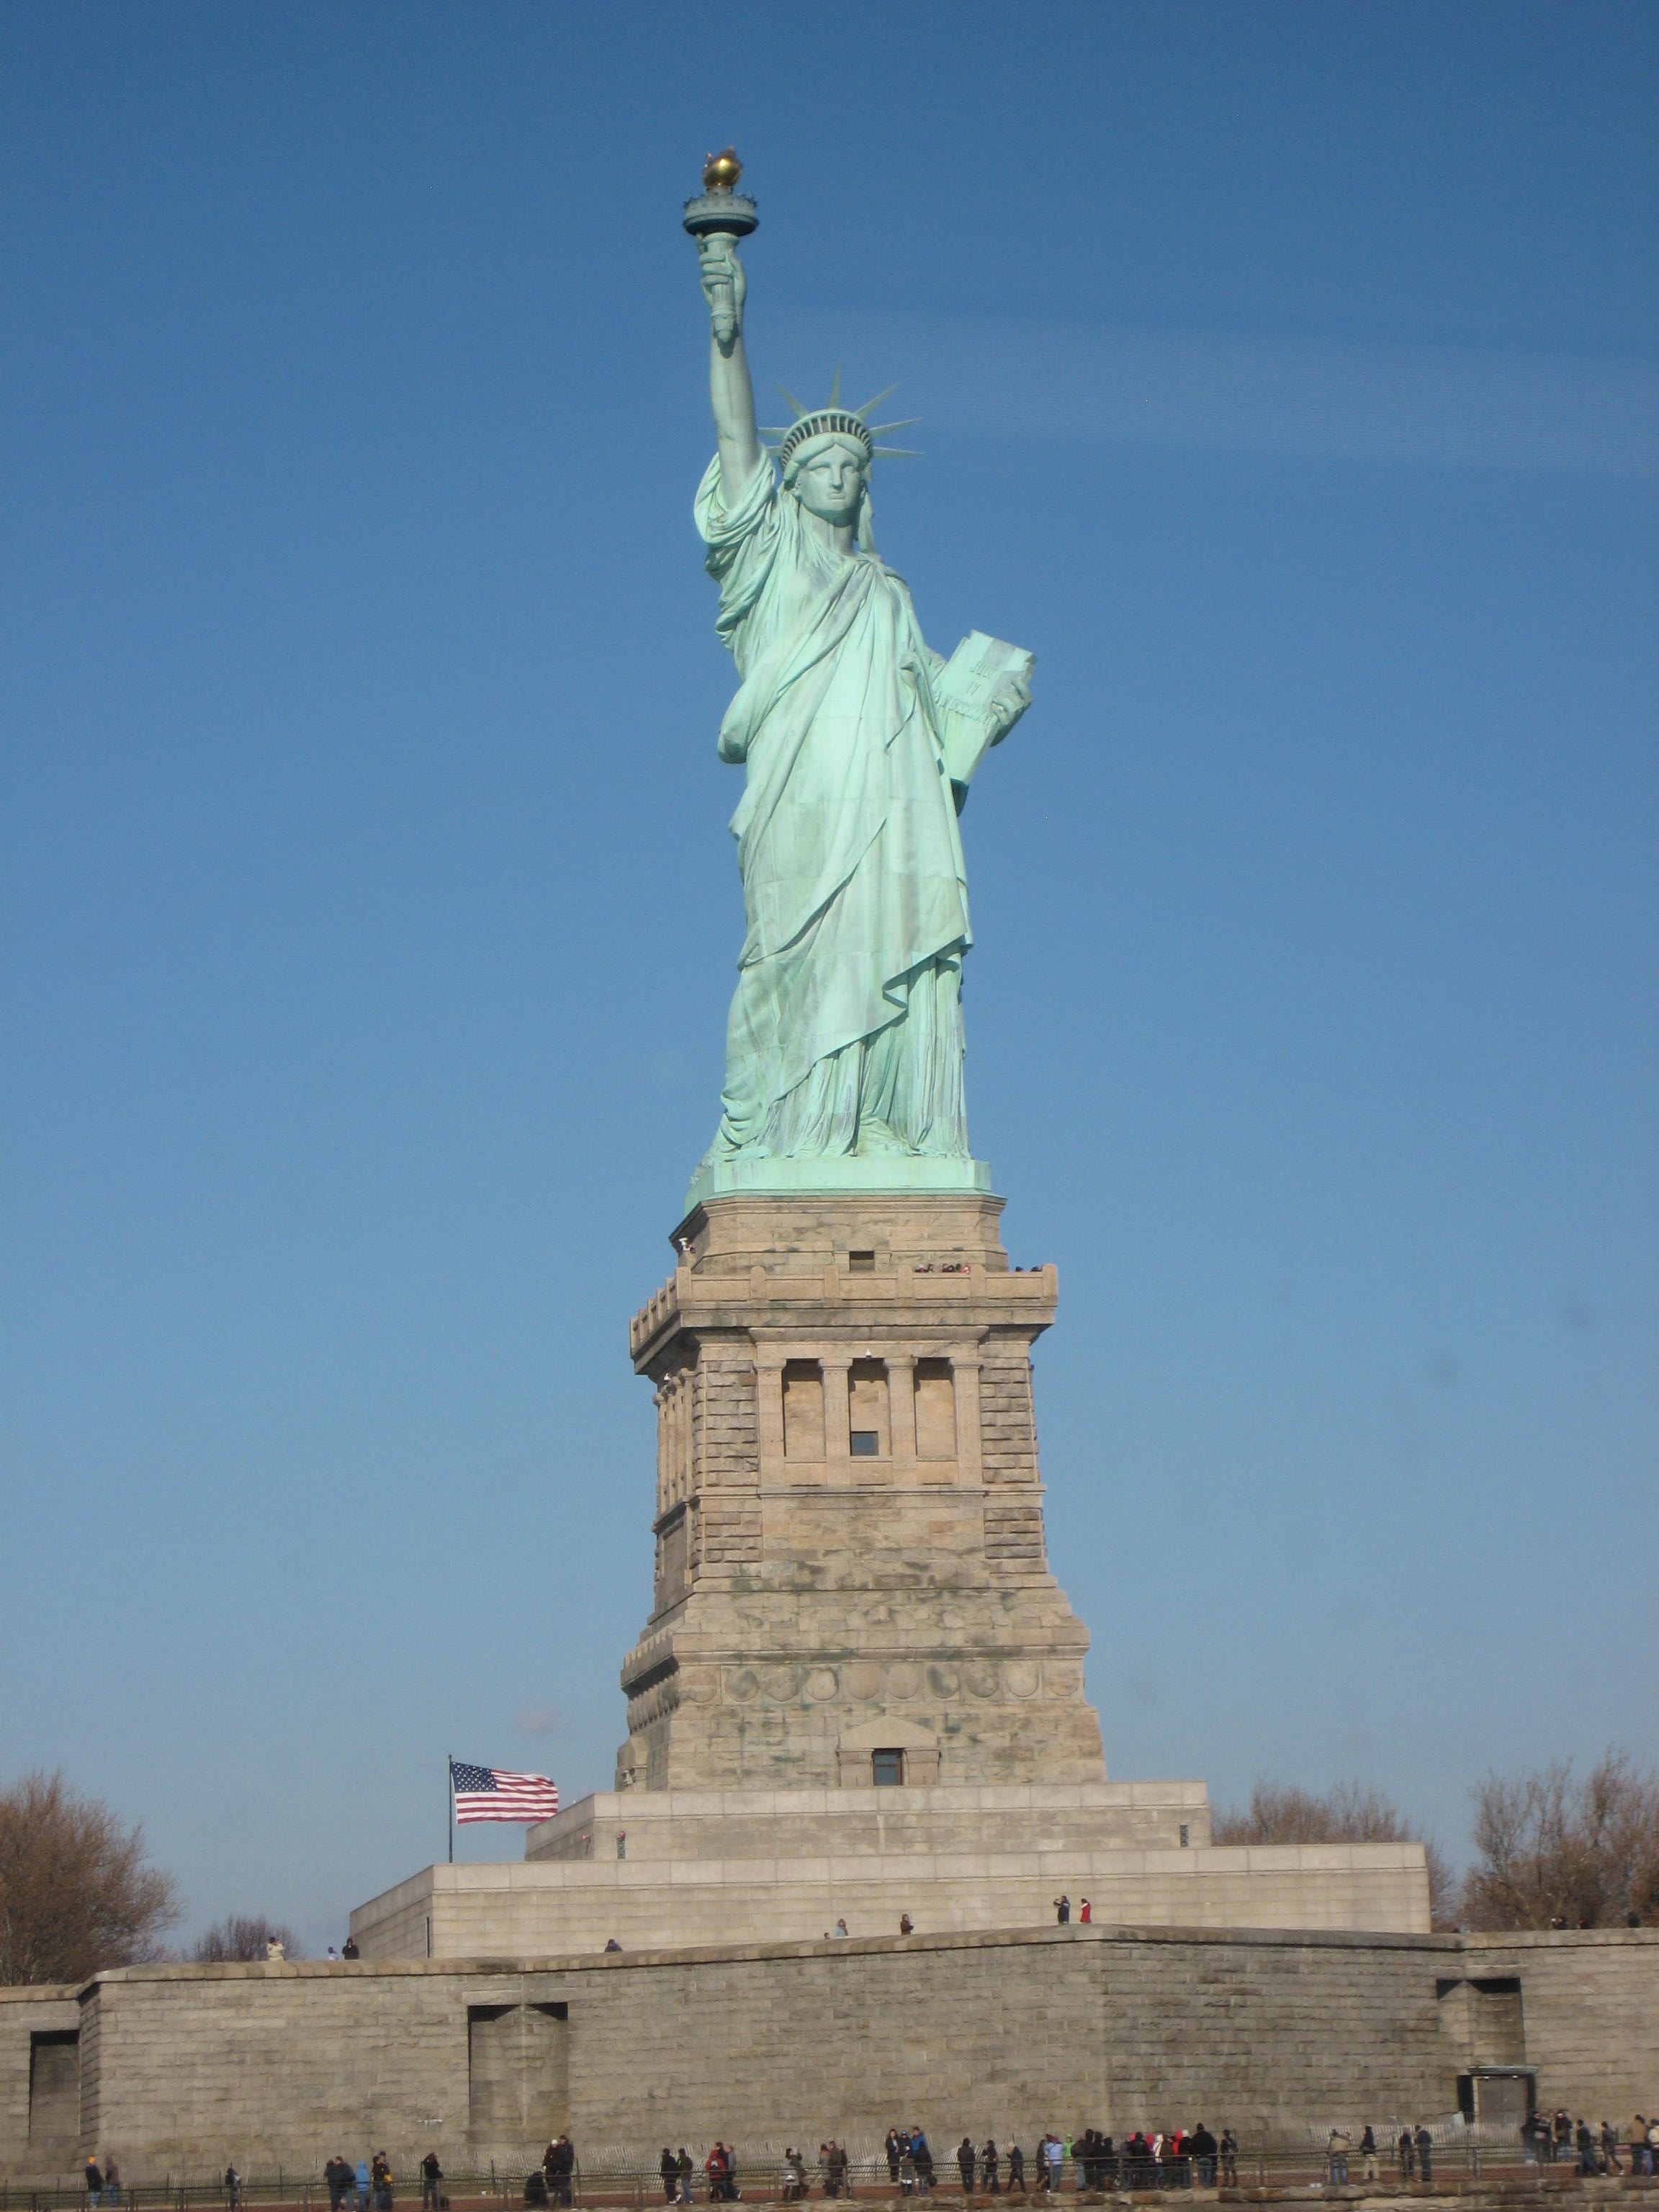 Staue of Liberty www.mytributejournal.com